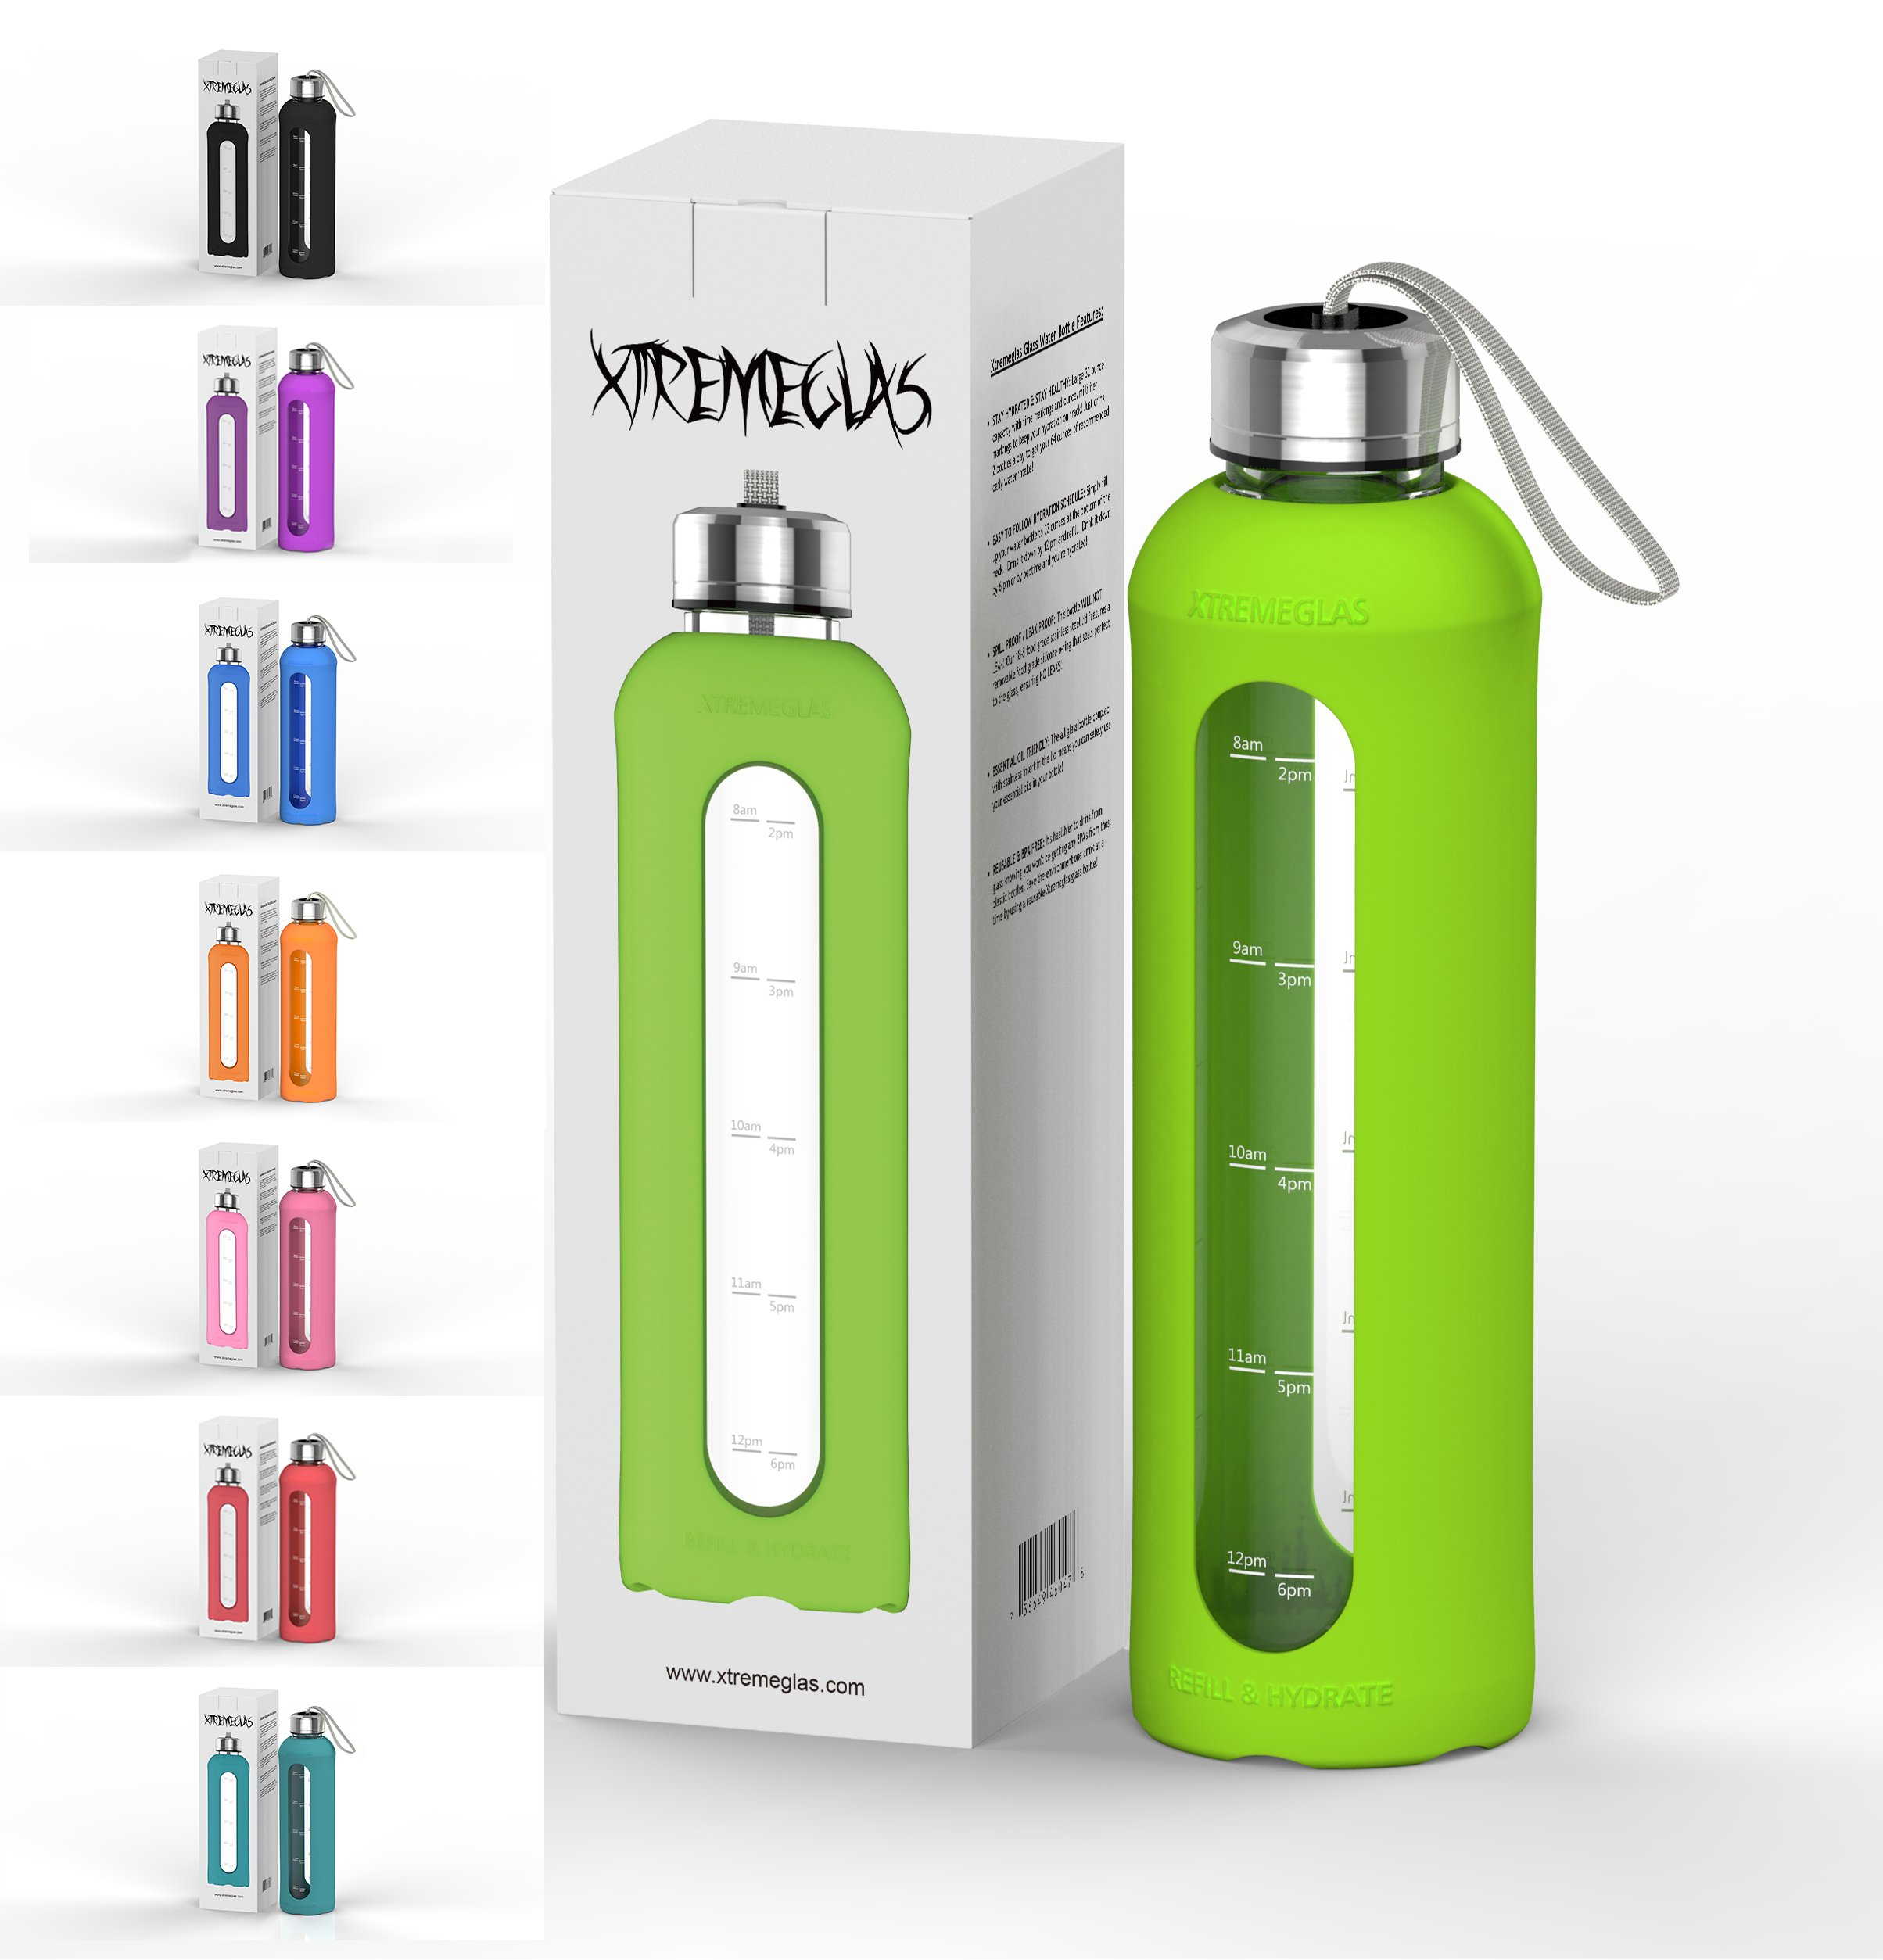 Xtremeglas 32 Oz Glass Water Bottle Silicone Sleeve Leak Proof Lids Time Markings & Measurements BPA Free to-Go Travel at Home Reusable Safe Hot Liquids Tea Coffee Daily Intake Drink (Green)